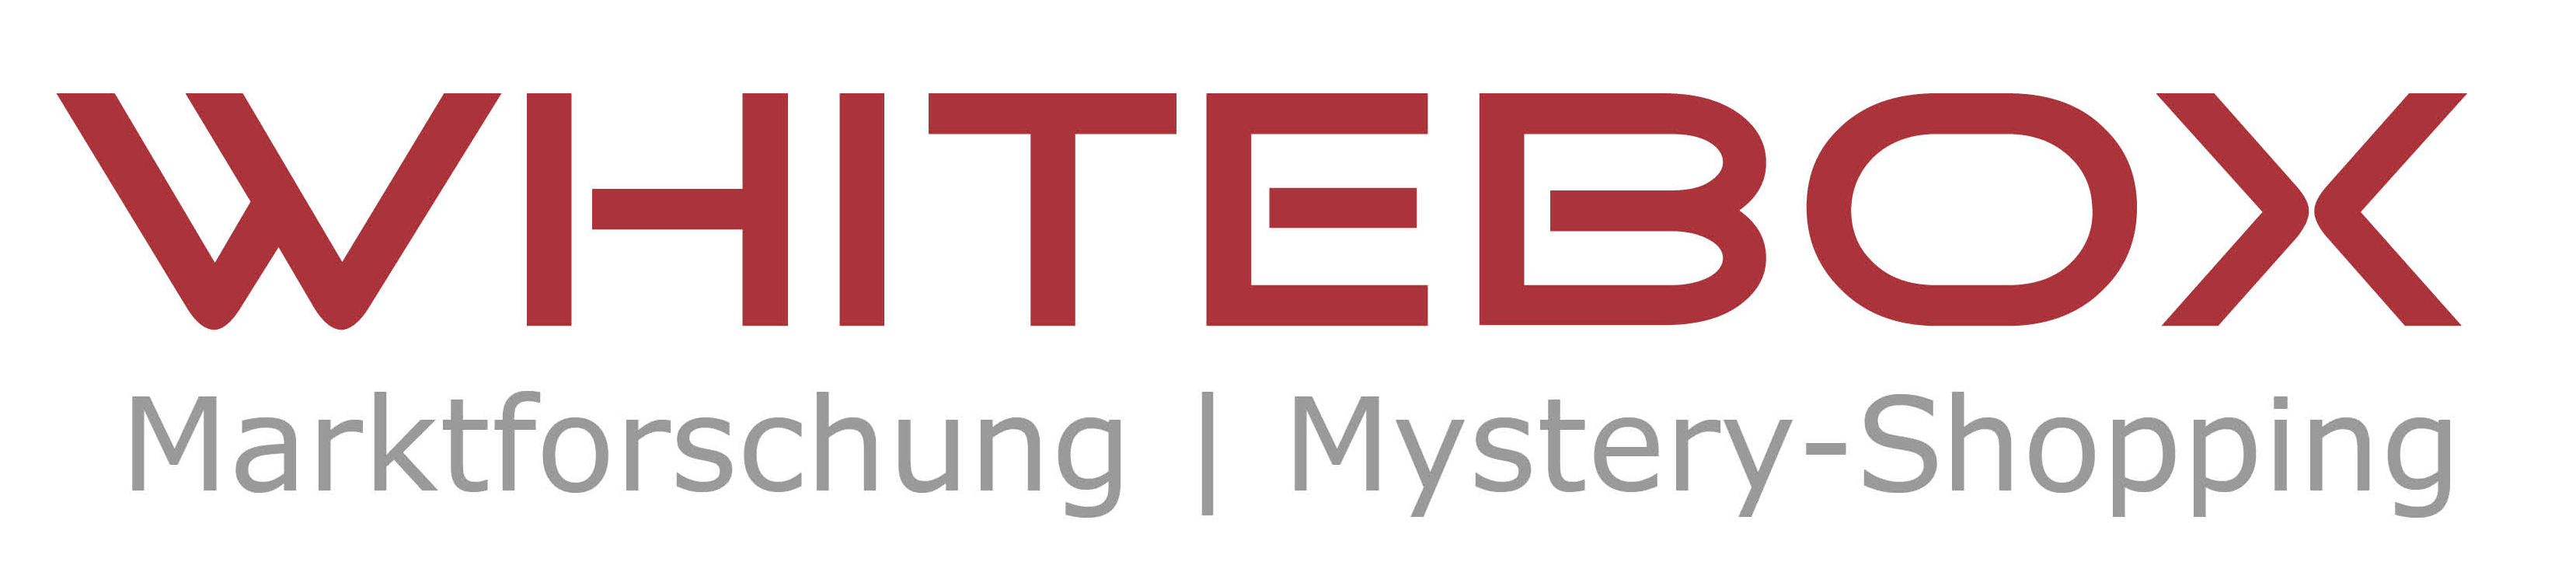 Whitebox GmbH Marktforschung | Mystery-Shopping